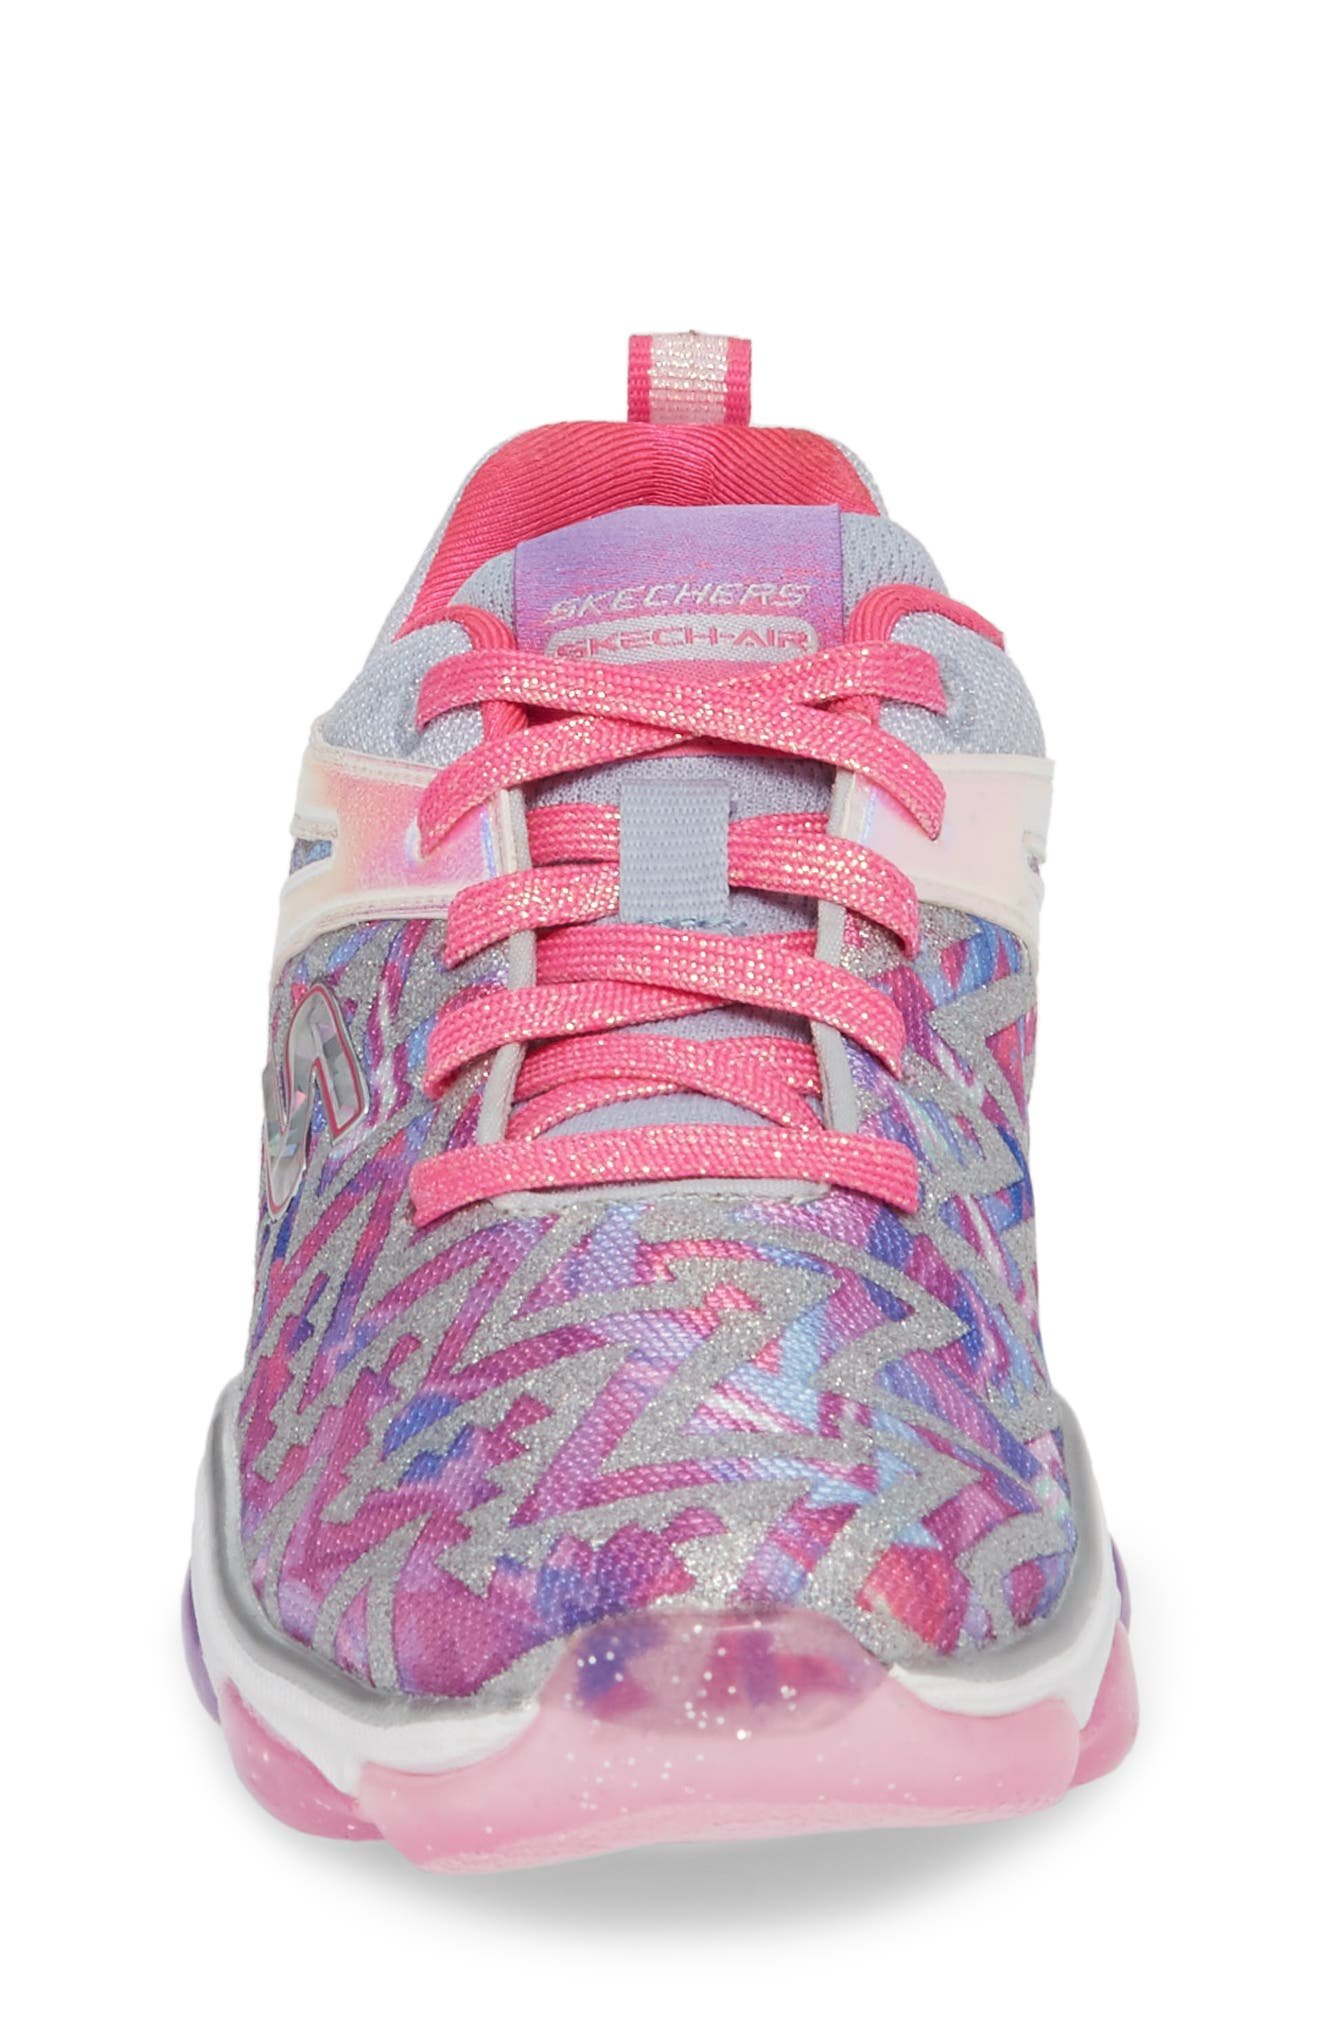 Skech Air Groove Sneaker,                             Alternate thumbnail 3, color,                             Pink/ Multi